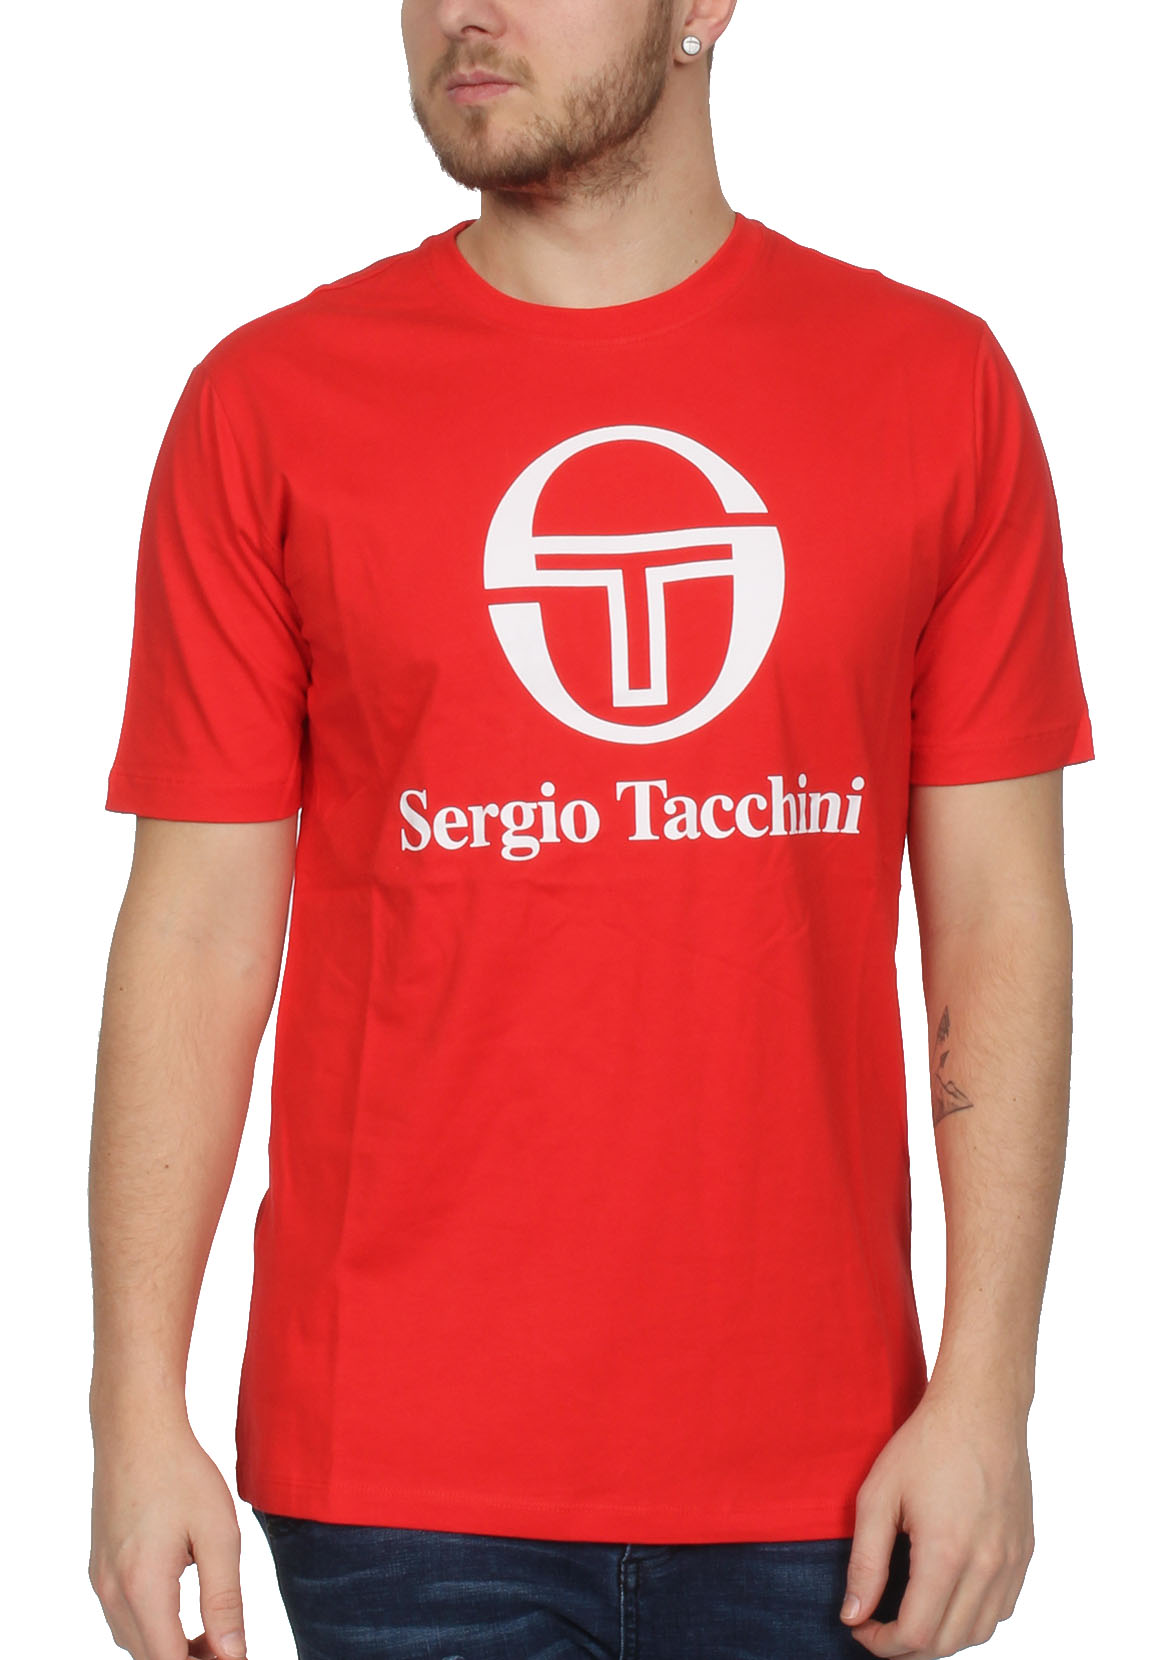 sergio tacchini t shirt herren chiko 038049 vintage red. Black Bedroom Furniture Sets. Home Design Ideas